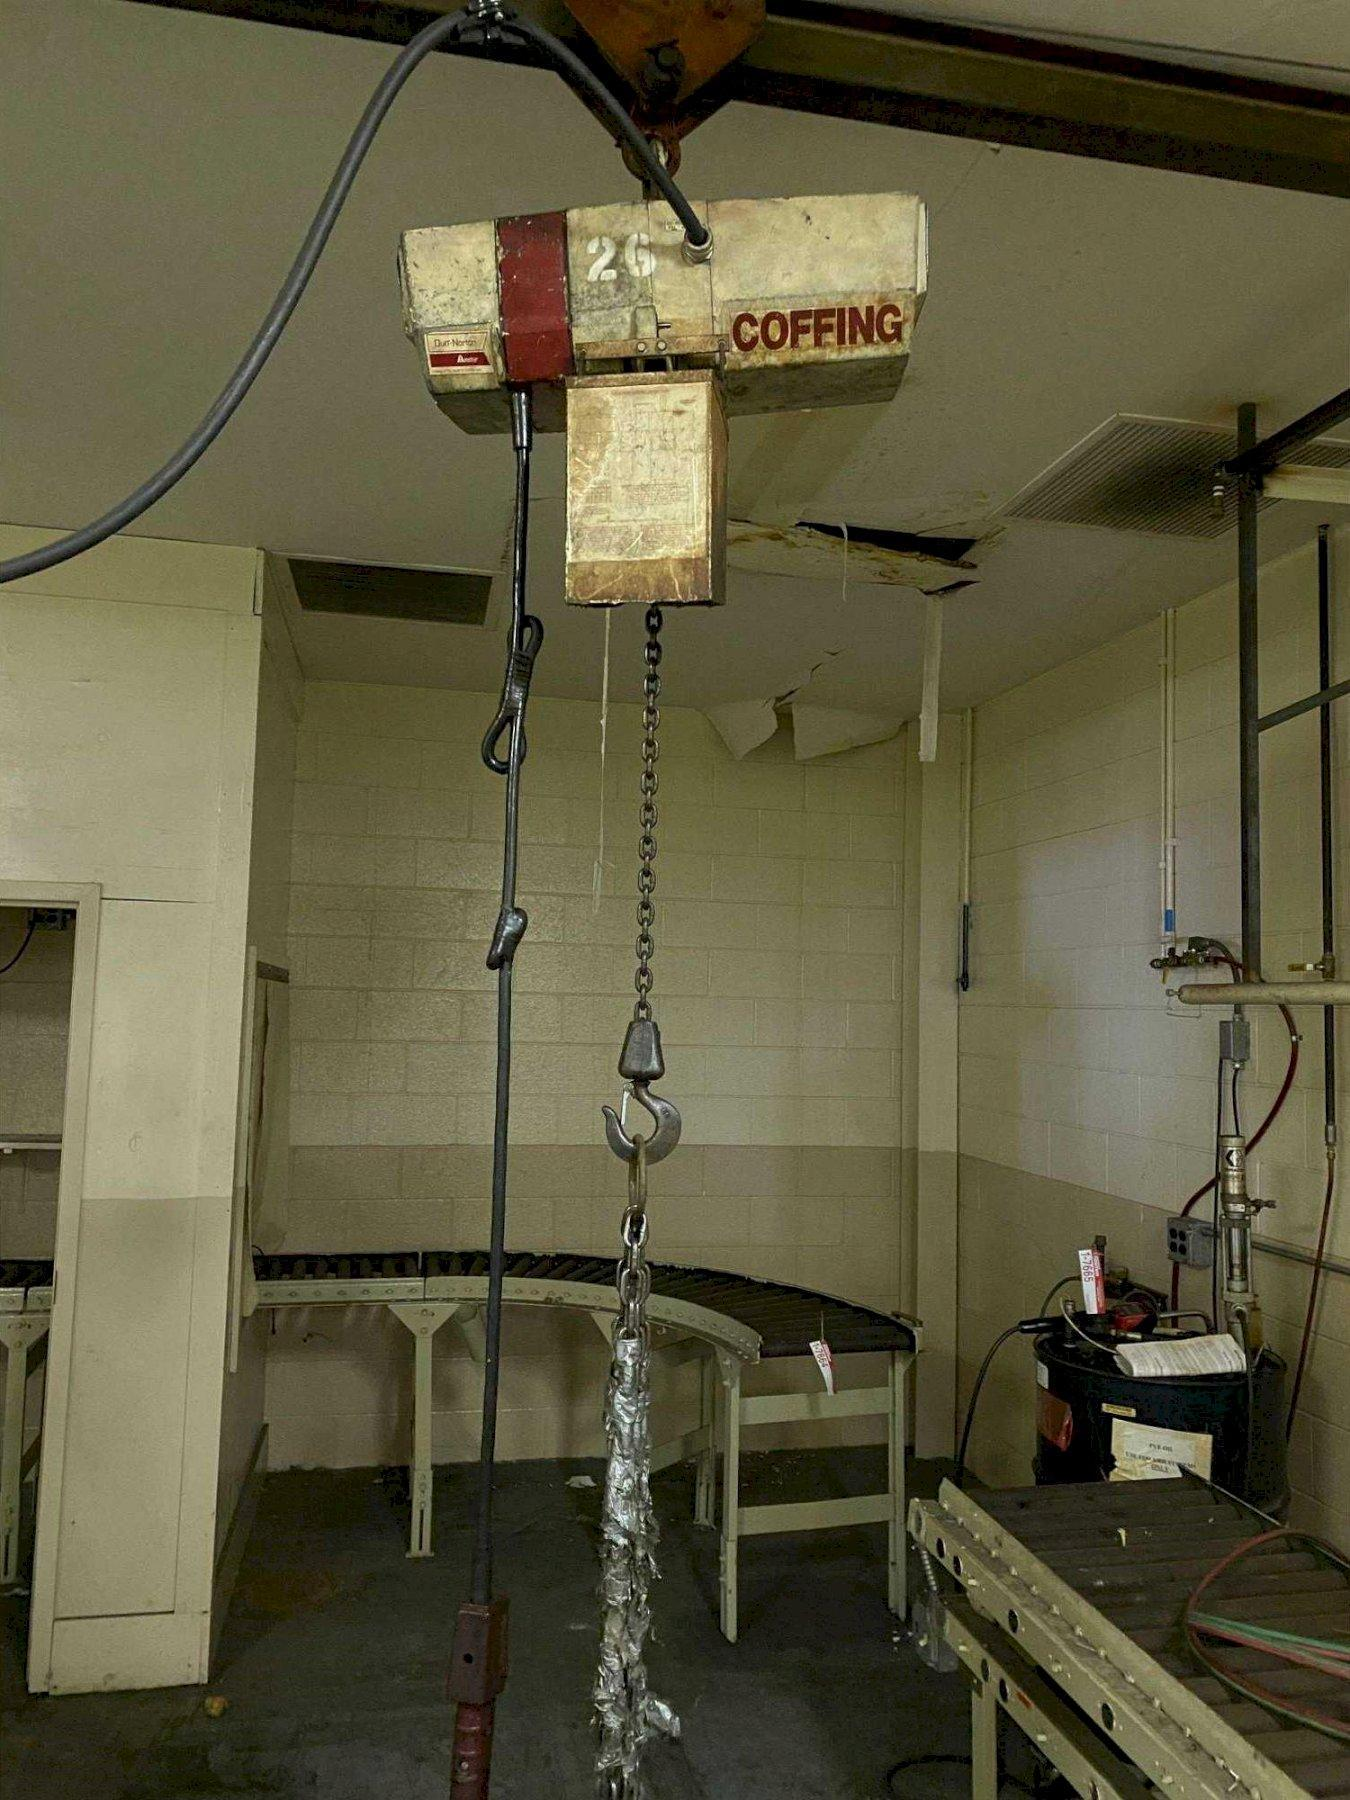 1/4 TON COFFING ELECTRIC CHAIN FALL HOIST. STOCK # 0958721